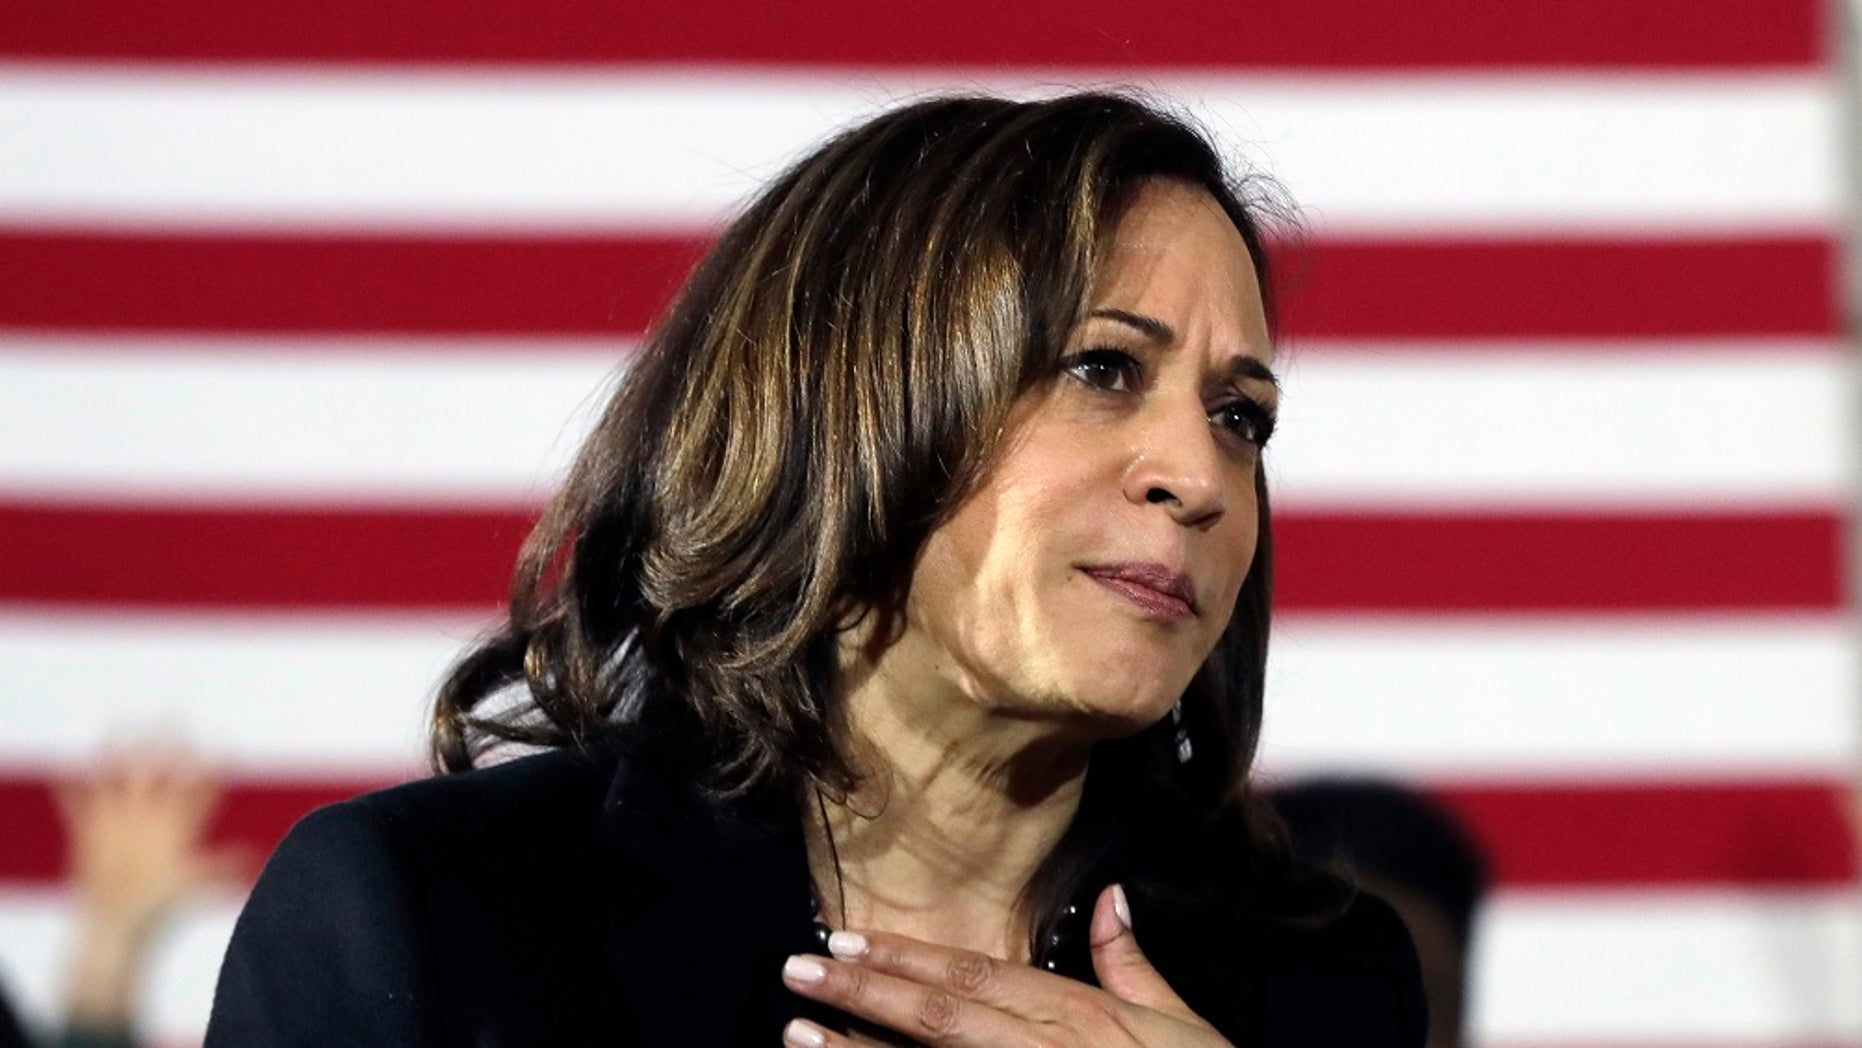 Democratic presidential candidate Sen. Kamala Harris, D-Calif., listens to a question at a campaign event in Portsmouth, N.H., Monday, Feb. 18, 2019. (Associated Press)